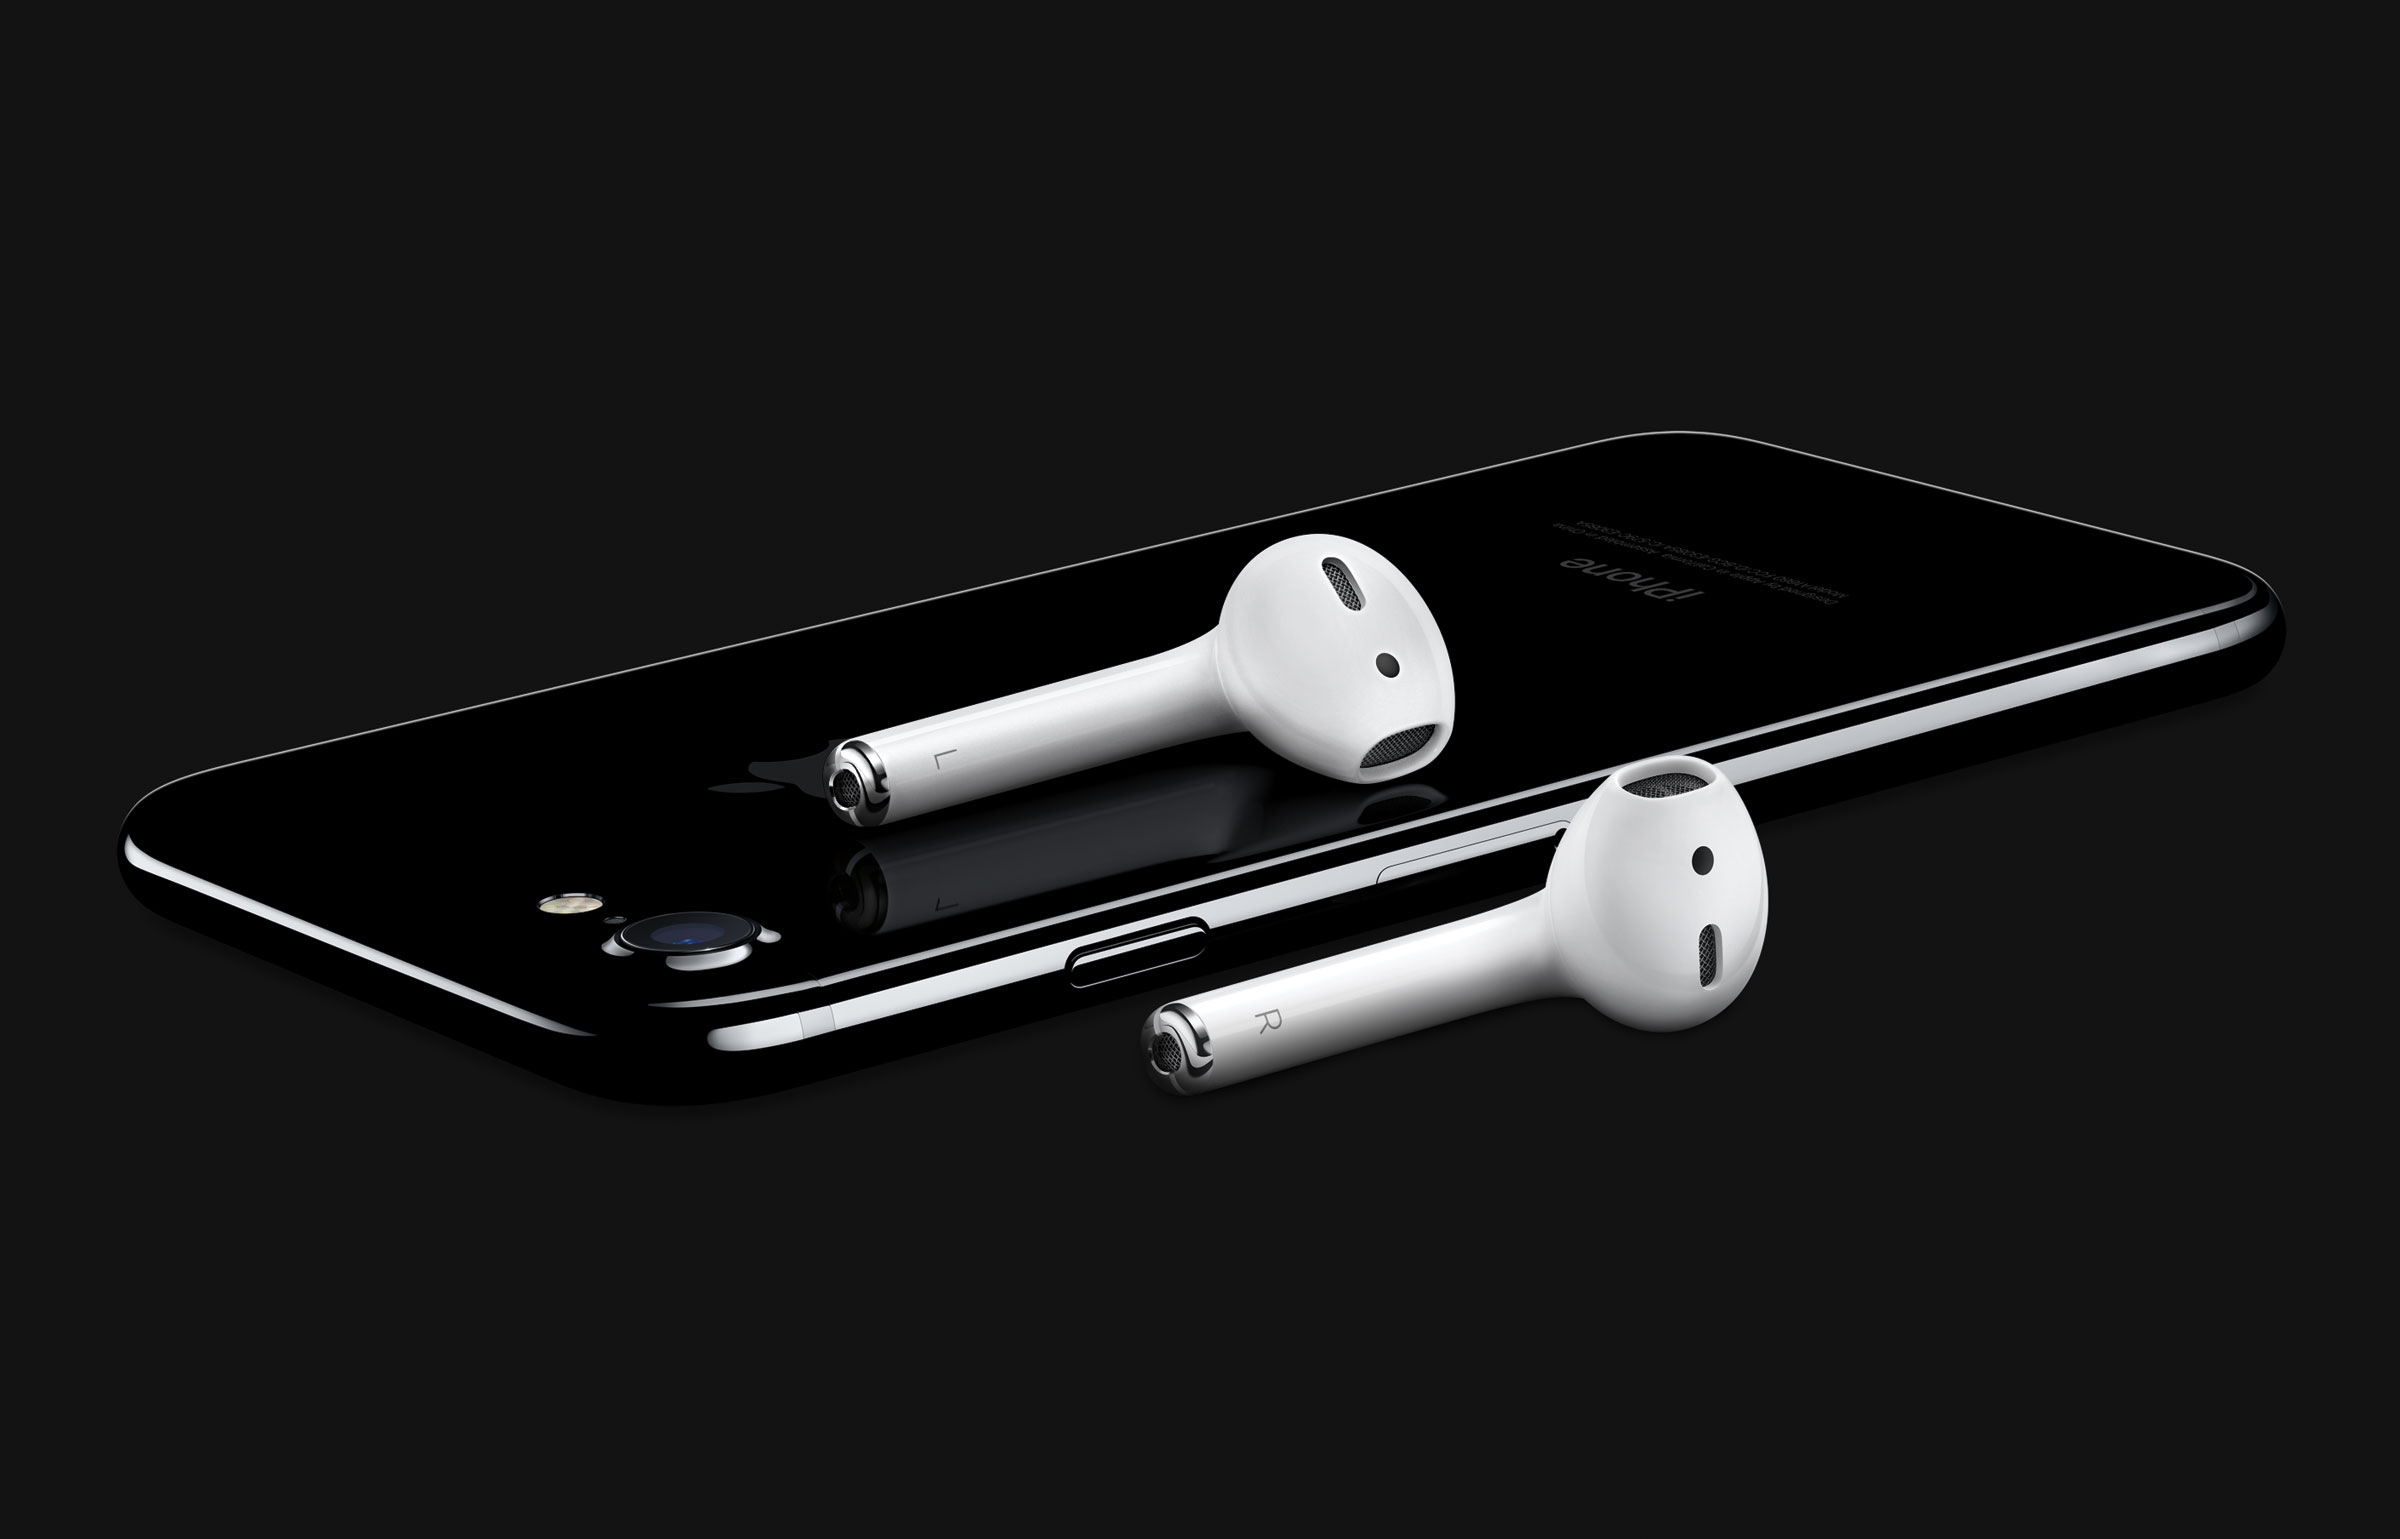 Apple AirPods iPhone 7 JetBlack